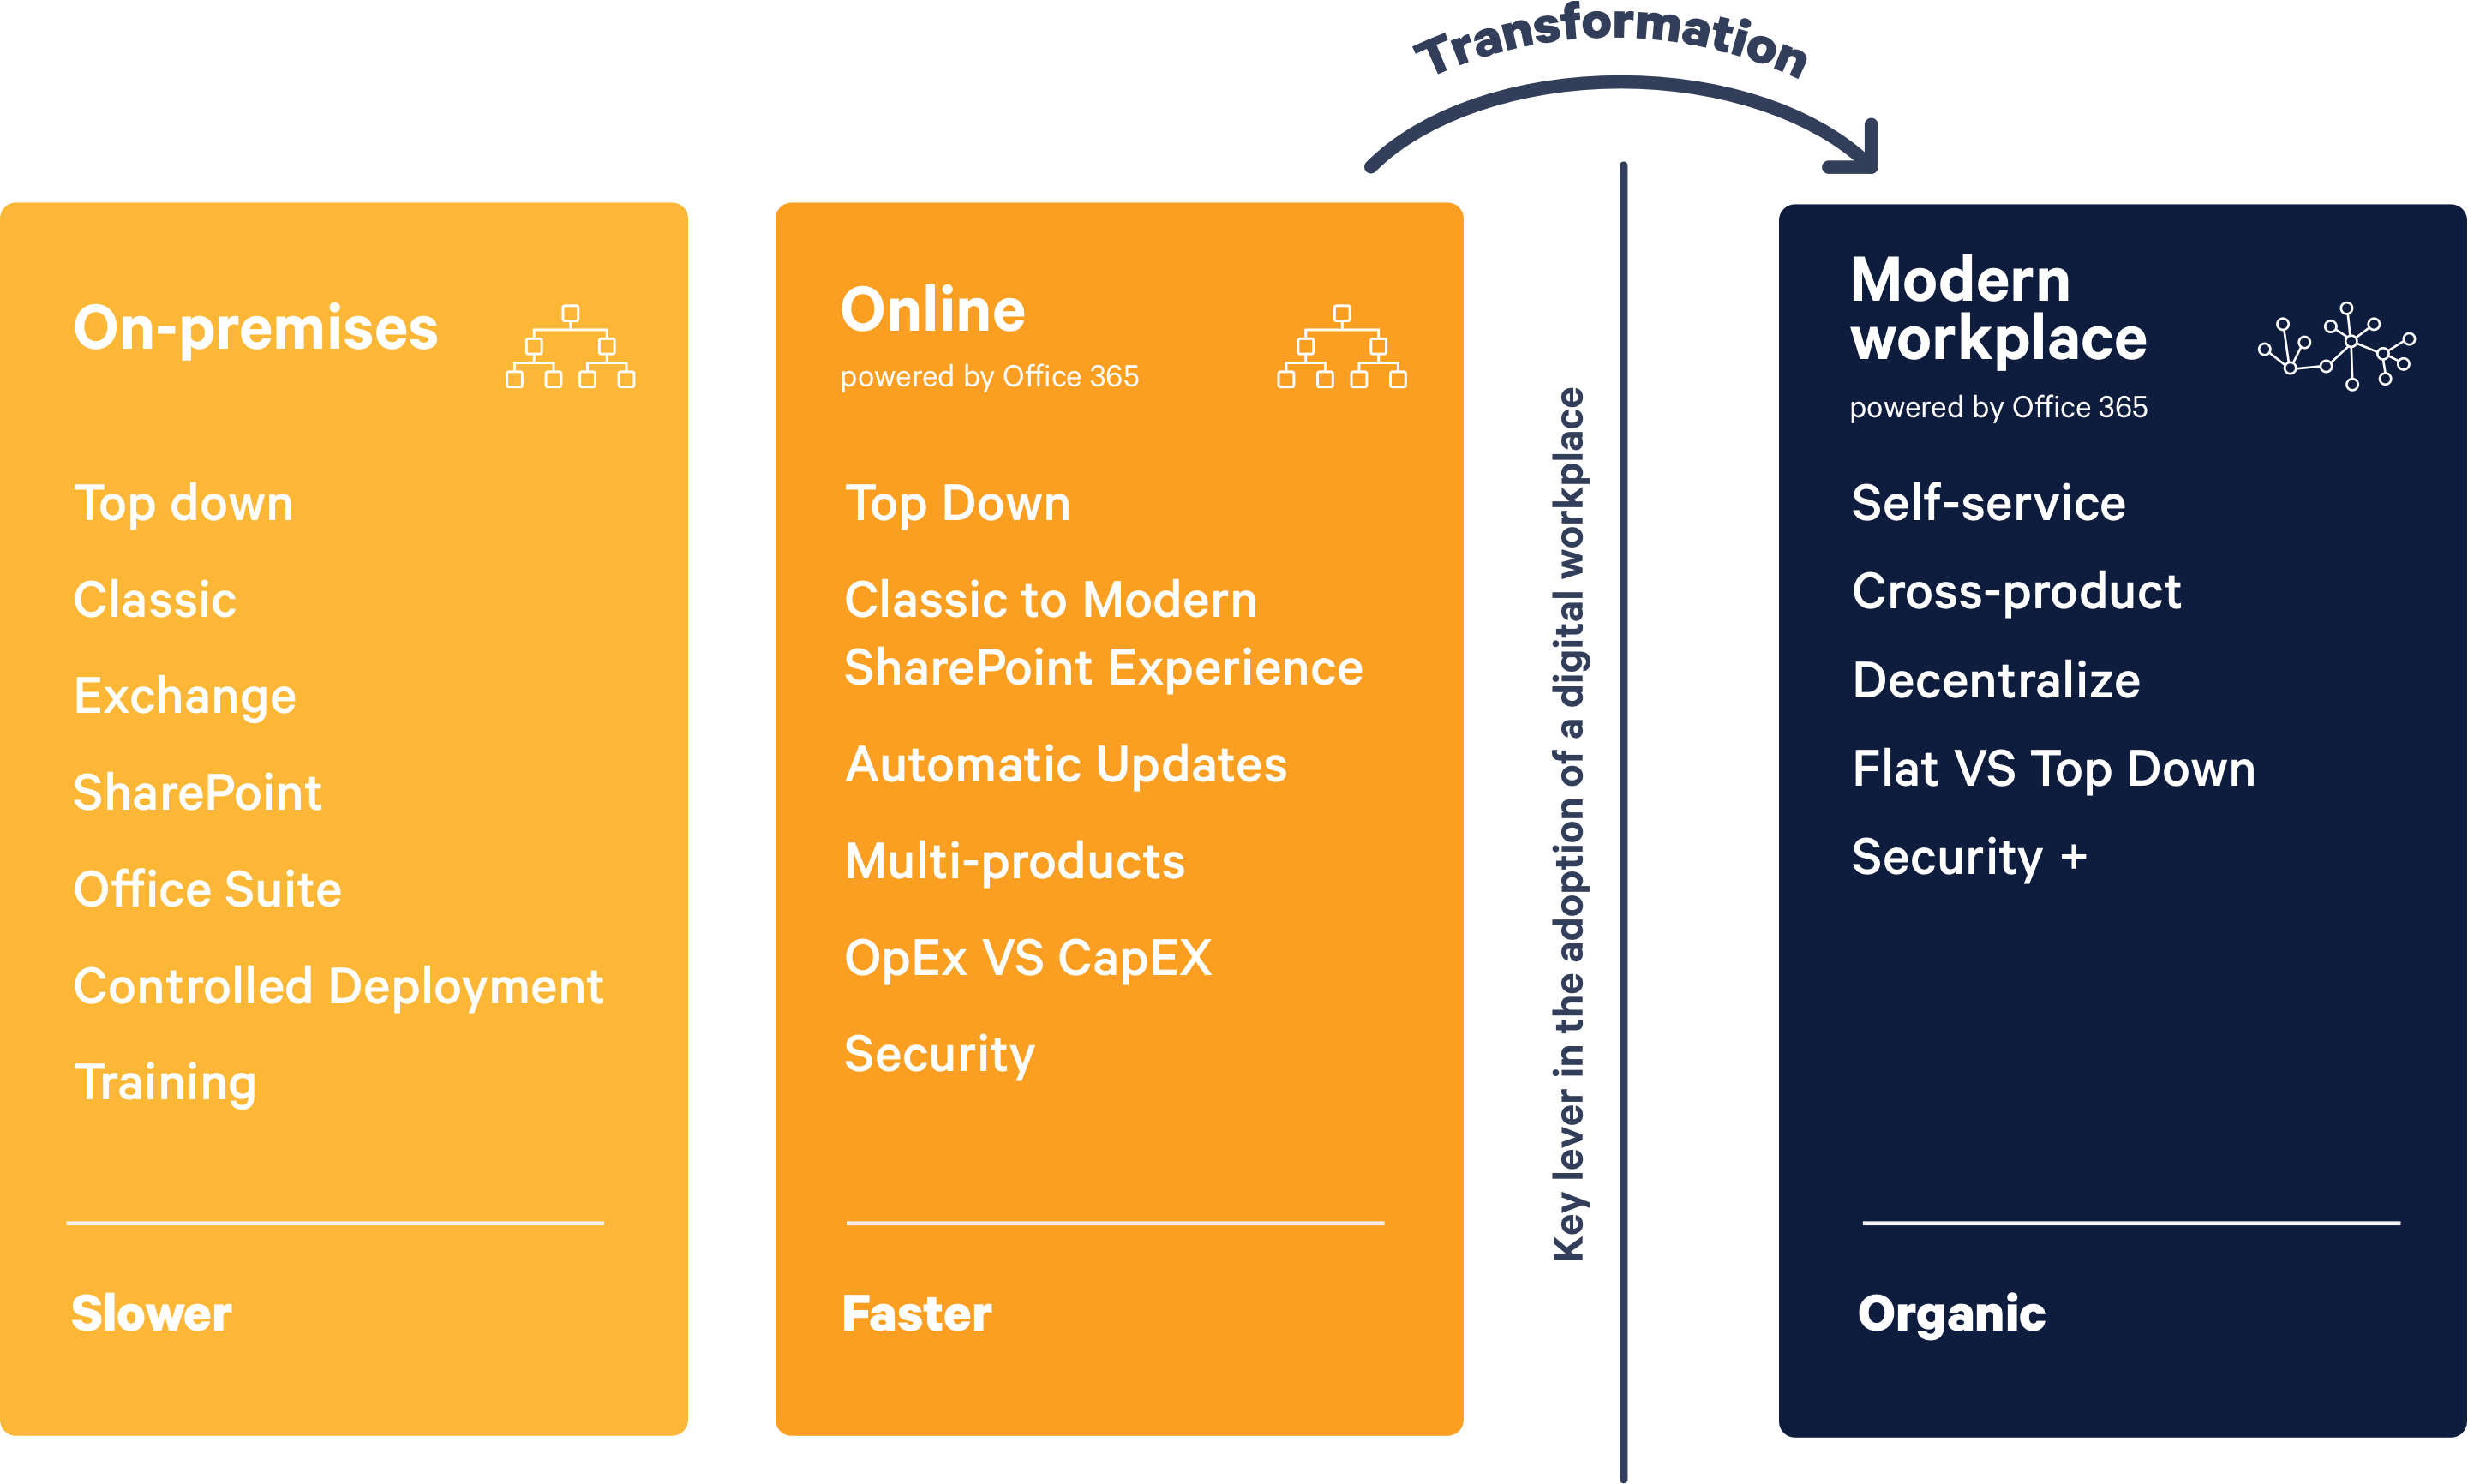 A grahic that shows a digital transformation to Modern Workplace